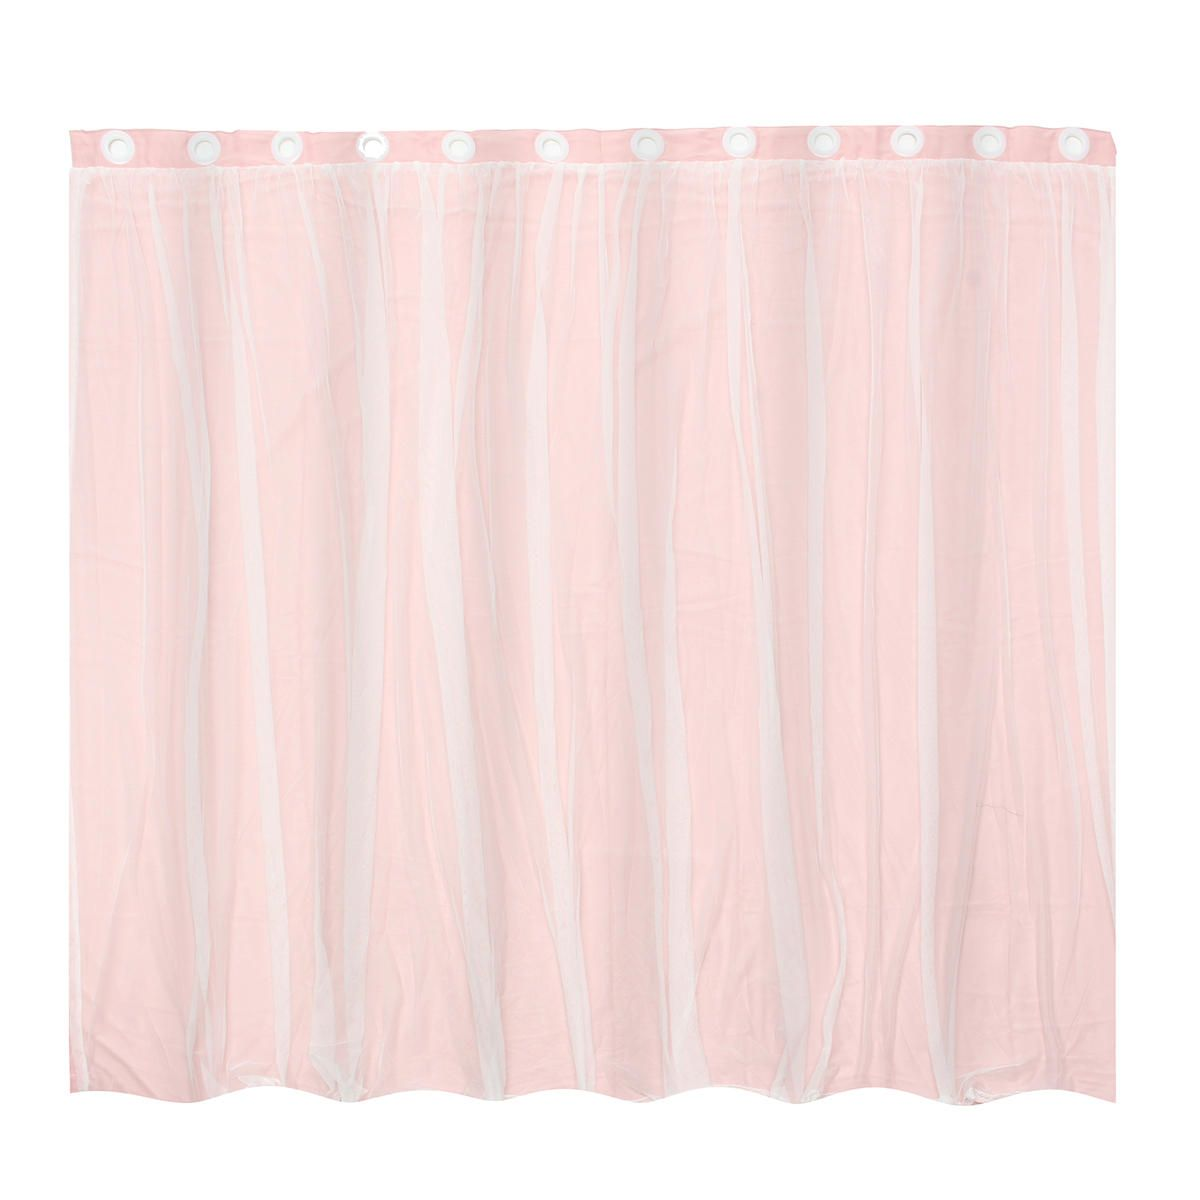 DTF US$38.43~61.93 Mediterranean Blockout Double Layer Bridal Lace Sheer Eyelet Curtains Pink White